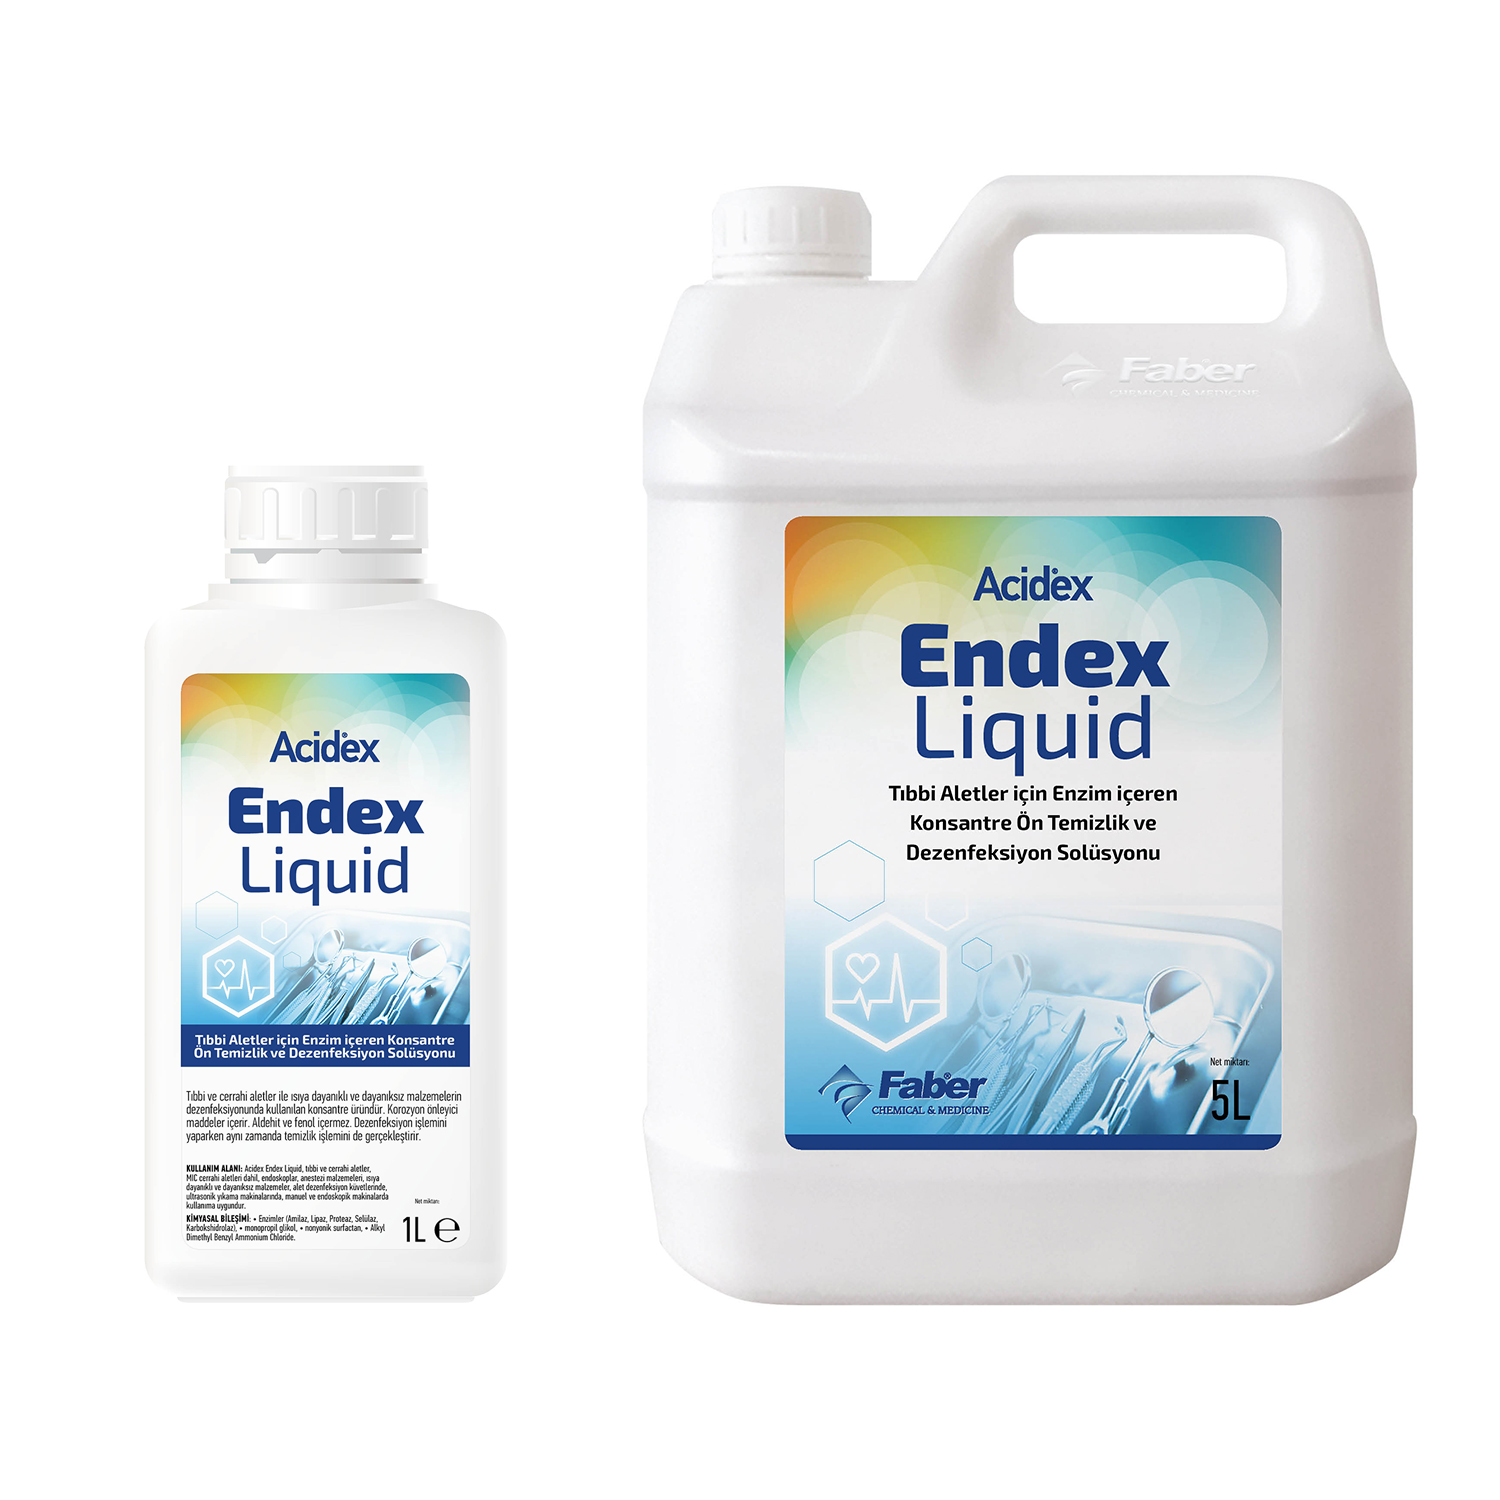 Acidex Endex Liquid